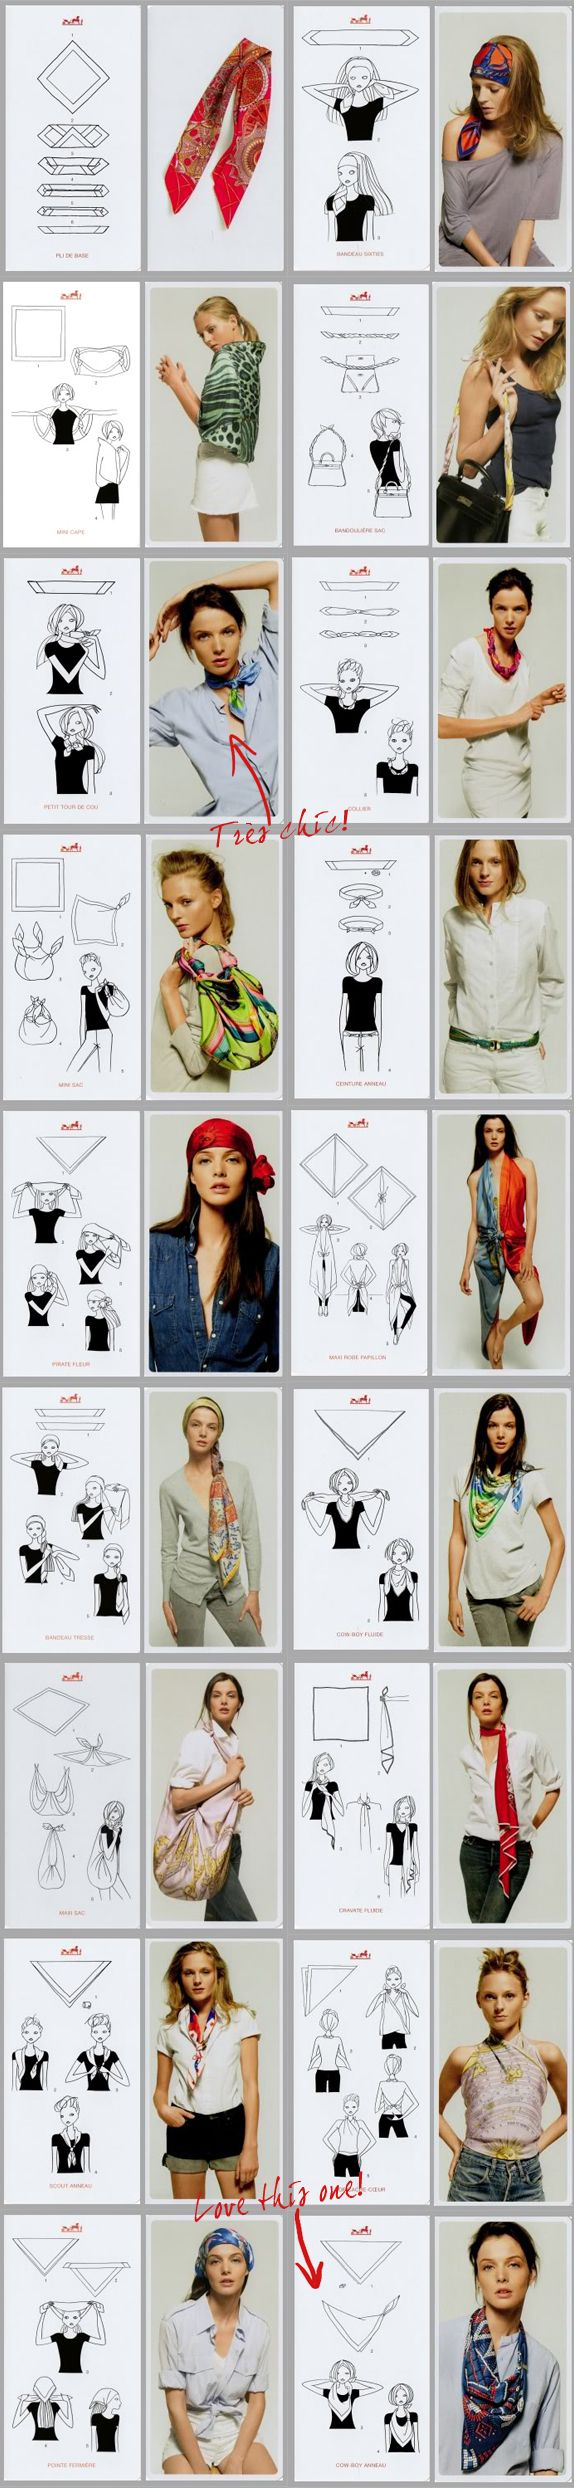 How To Fold Your Hermes Scarf 21 Diagrams Content In A Cottage Australialightswitchwiringaustralialightswitchwiringdiagram Style Lesson Chic And Creative Ways Wear Share Rh Pinterest Com